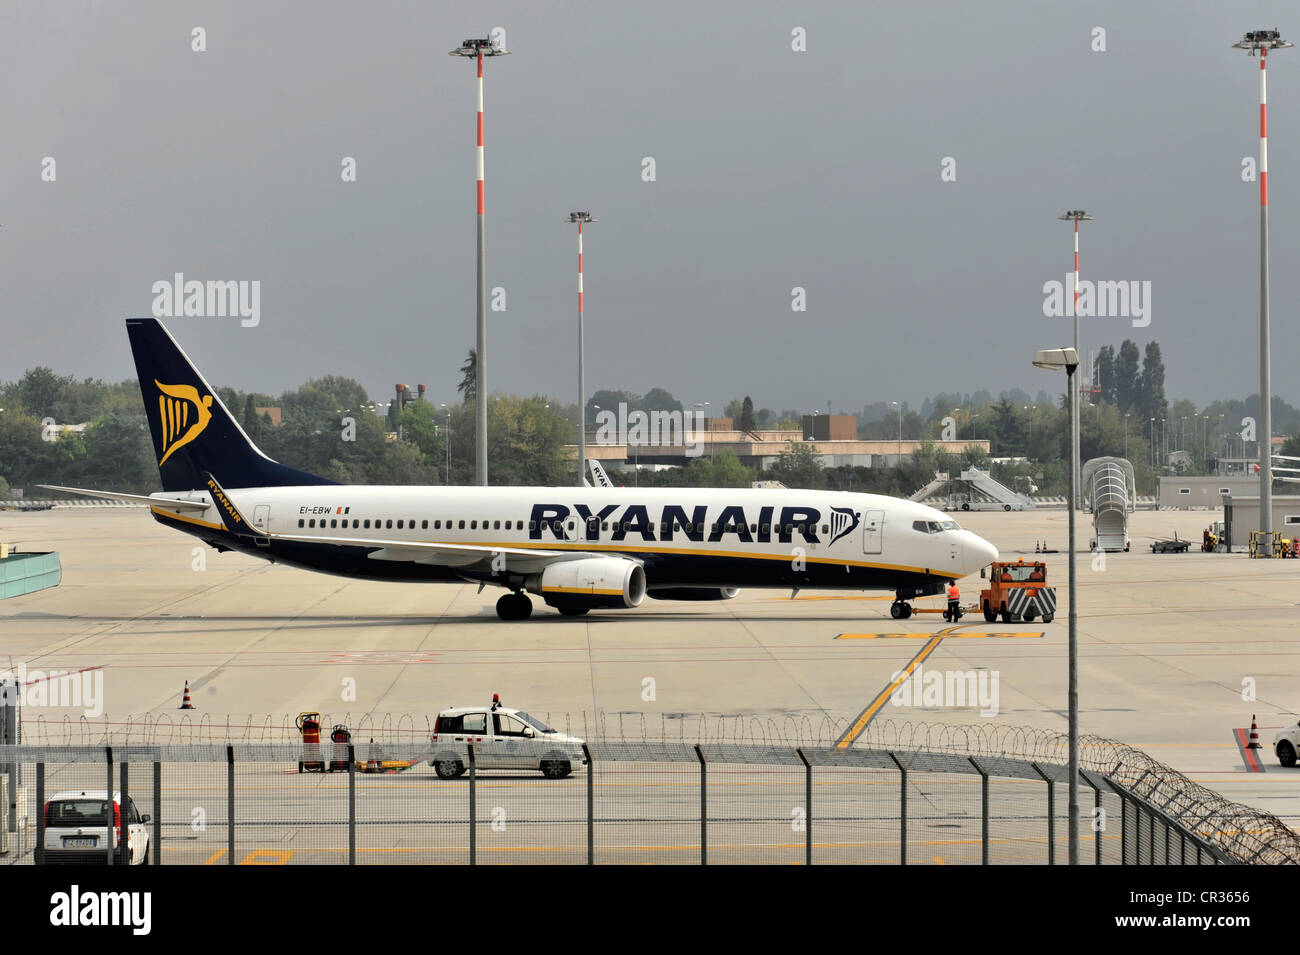 EI-EBW Ryanair Boeing 737-800, before take-off, Venice-Marco Polo Airport, Venice, Veneto, Italy, Europe - Stock Image